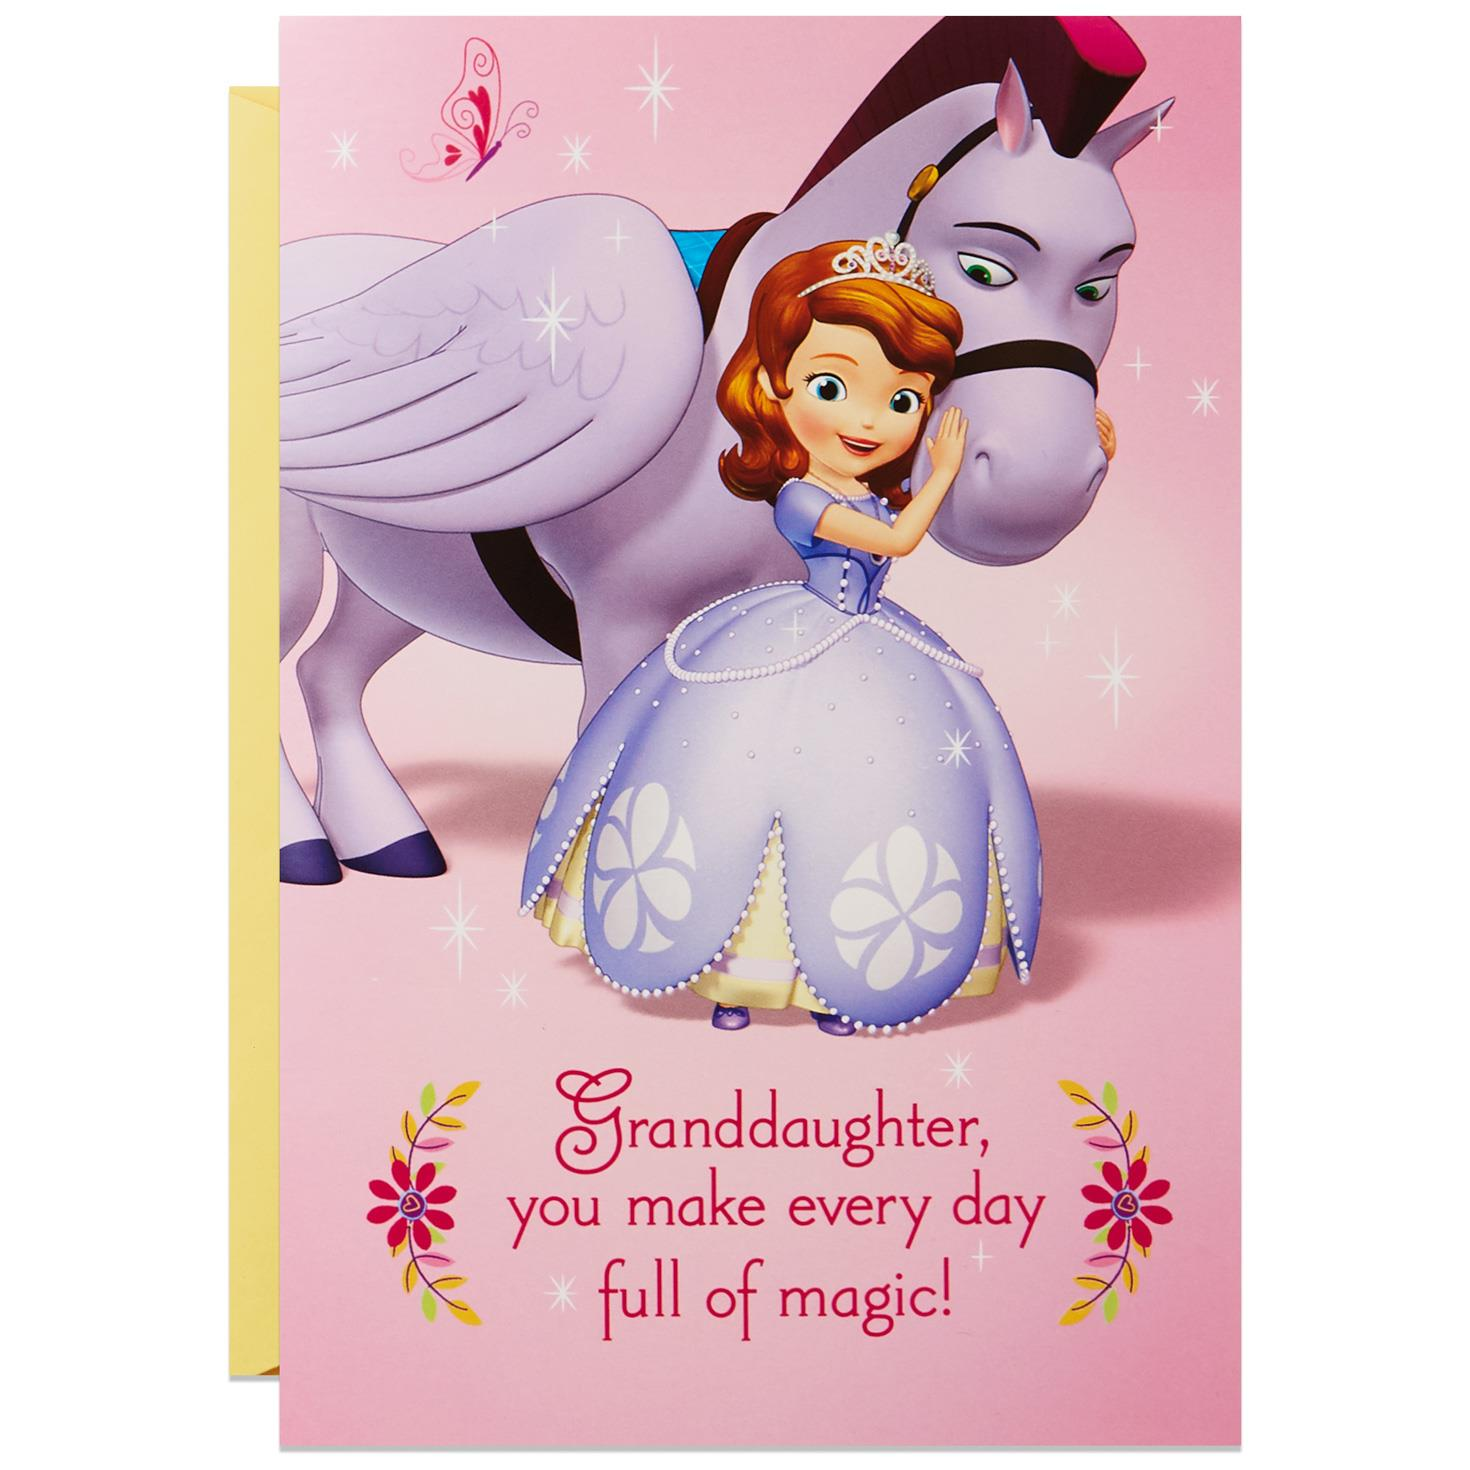 Sofia the first and minimus musical birthday card for sofia the first and minimus musical birthday card for granddaughter bookmarktalkfo Gallery